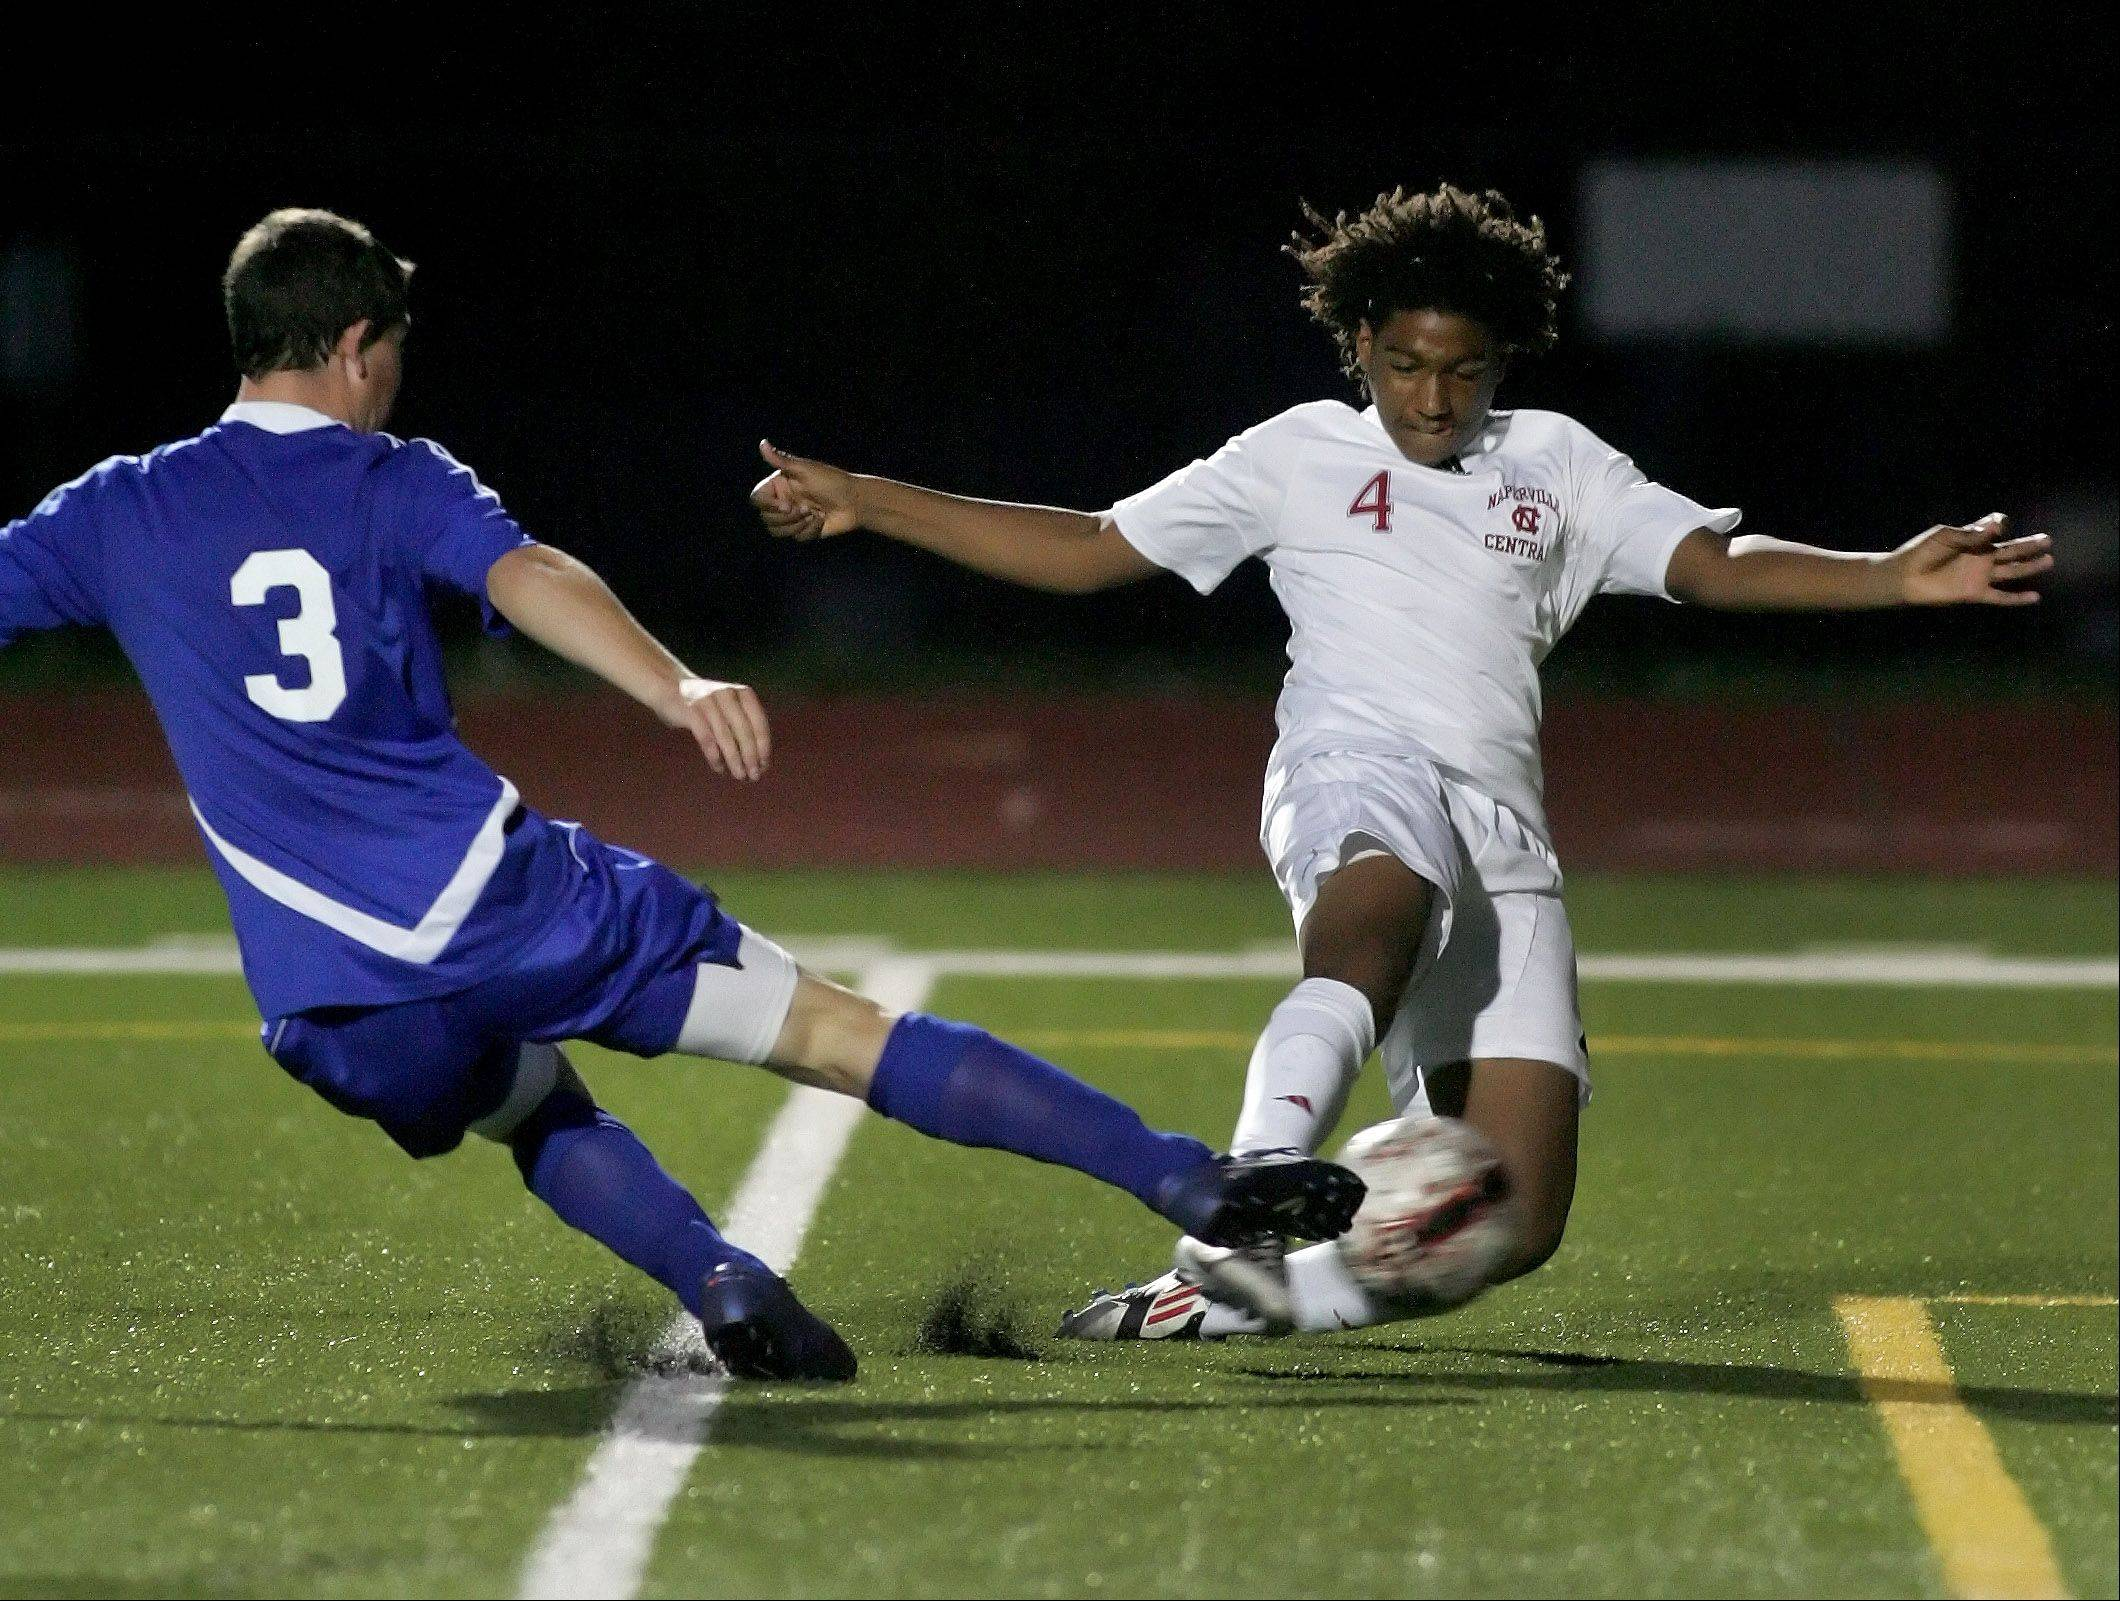 Bev Horne/bhorne@dailyherald.comDevon Amoo-Mensah, right, of Naperville Central, takes control of the ball from Brian Pfaff of Wheaton North and scores on Tuesday in Naperville.